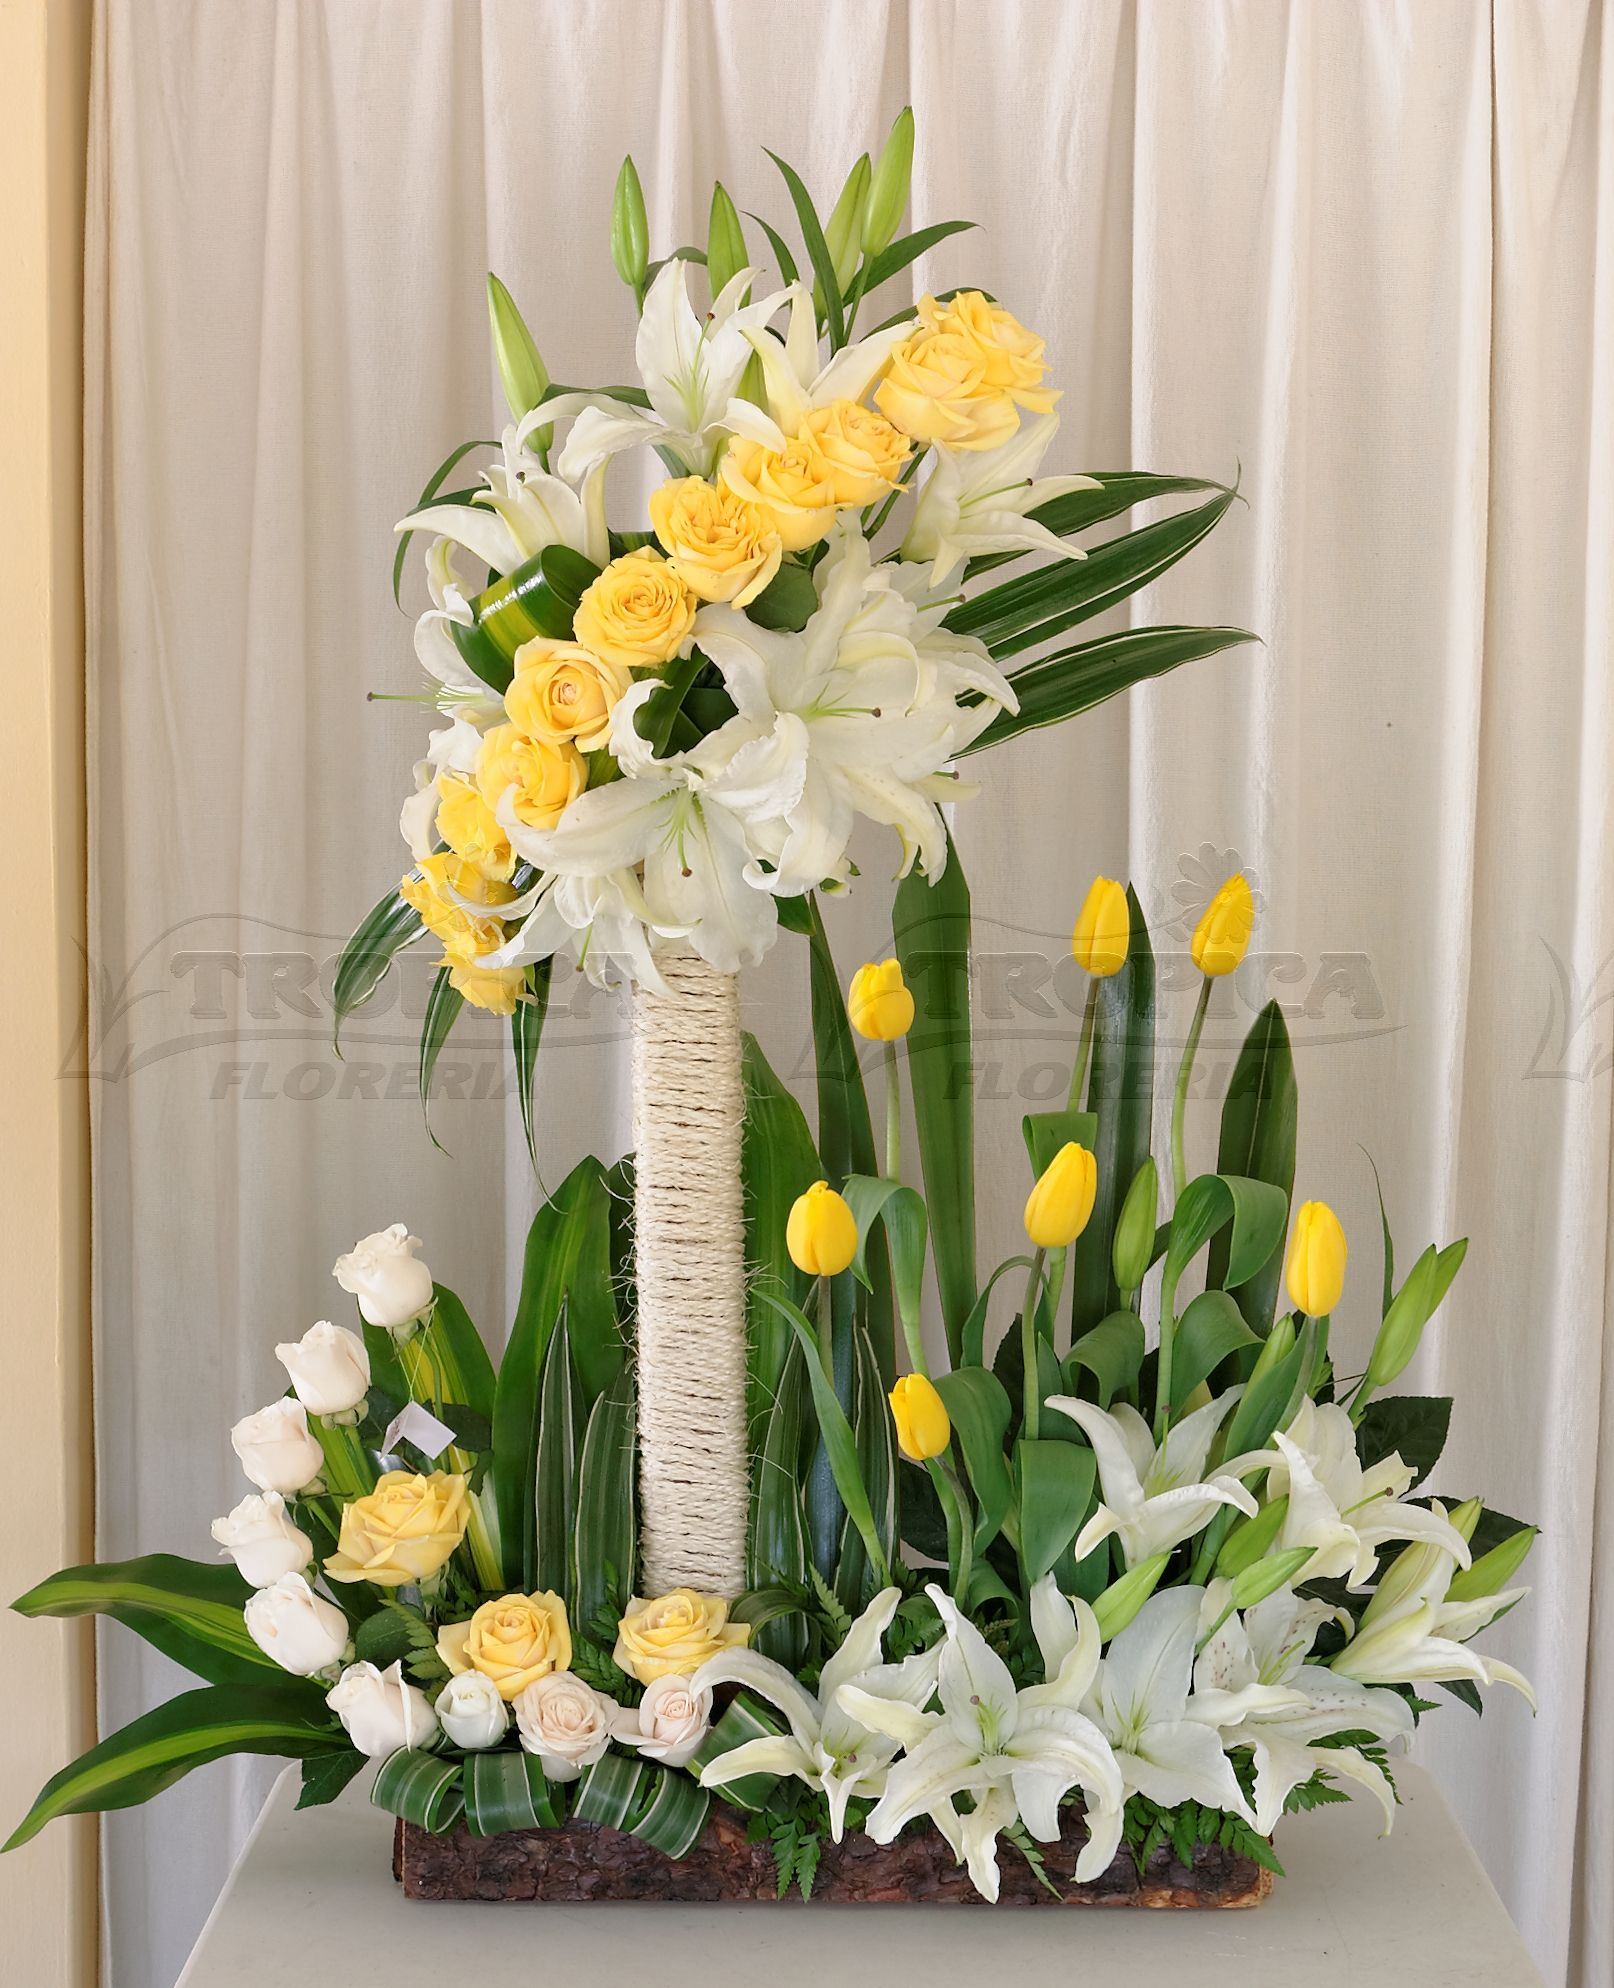 Church Altars Modern Flower Arrangement: Arreglo Grande Con Tullipanes @ Tropica Floreria